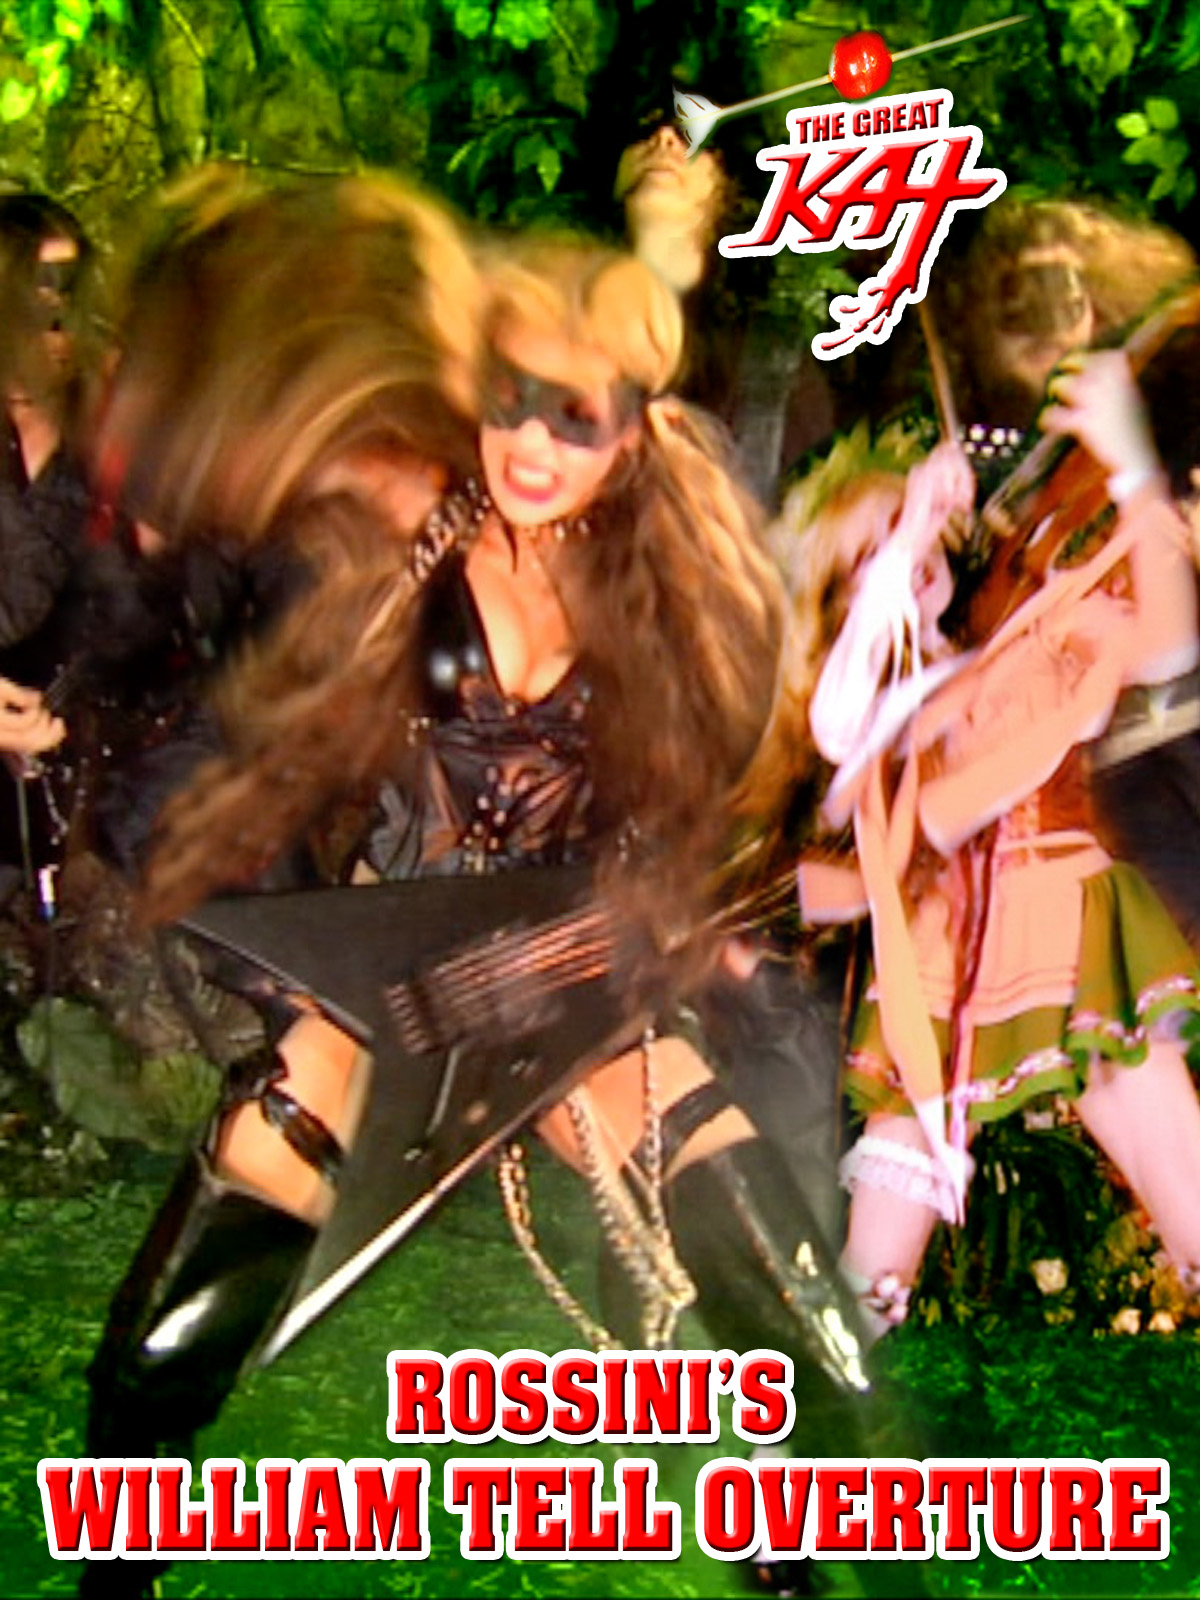 """AMAZON PREMIERES ROSSINI'S """"WILLIAM TELL OVERTURE"""" MUSIC VIDEO: The Great Kat shreds the famous TV show Lone Ranger theme song on guitar & violin!  WATCH at https://www.amazon.com/dp/B079JRY3CD  The Great Kat shreds the famous TV show """"Lone Ranger"""" theme song on virtuoso guitar & violin and conducts her all-male rhythm guitar symphony, bringing the legend of the famous archer William Tell to life. Rossini's """"William Tell Overture"""" is one of Classical music's most recognizable masterpieces. Starring Great Kat (""""Top 10 Fastest Shredders Of All Time"""") Juilliard virtuoso violin/guitar legend."""